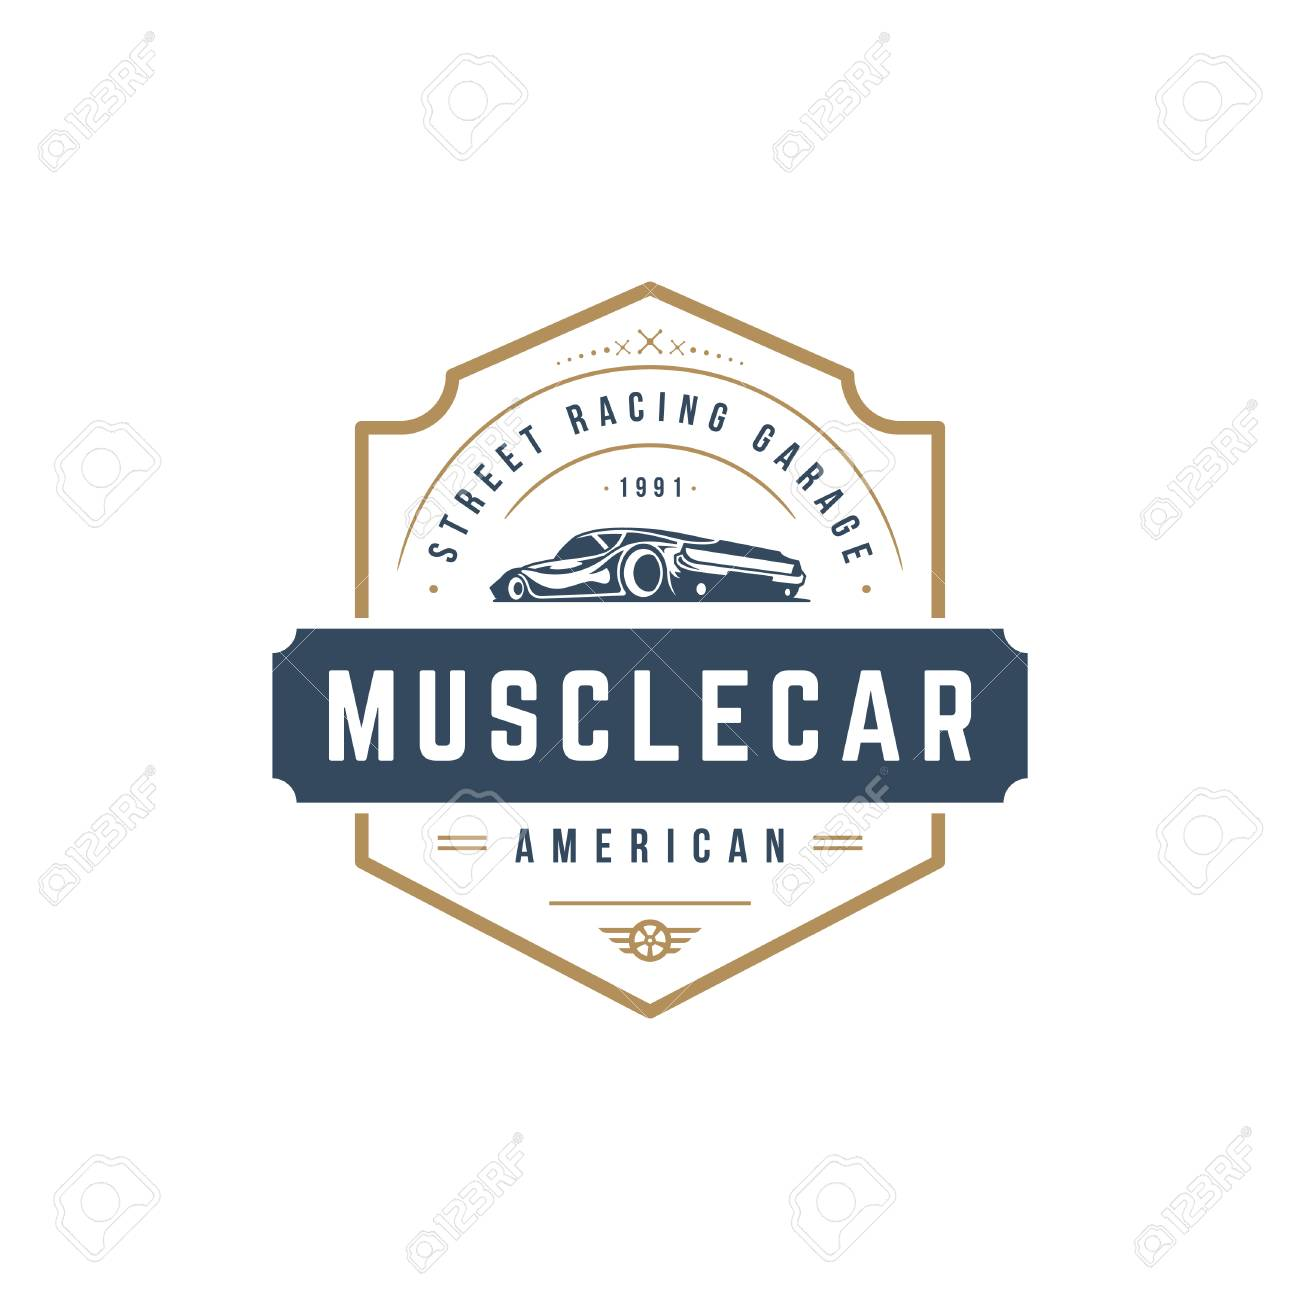 muscle car logo template vector design element vintage style